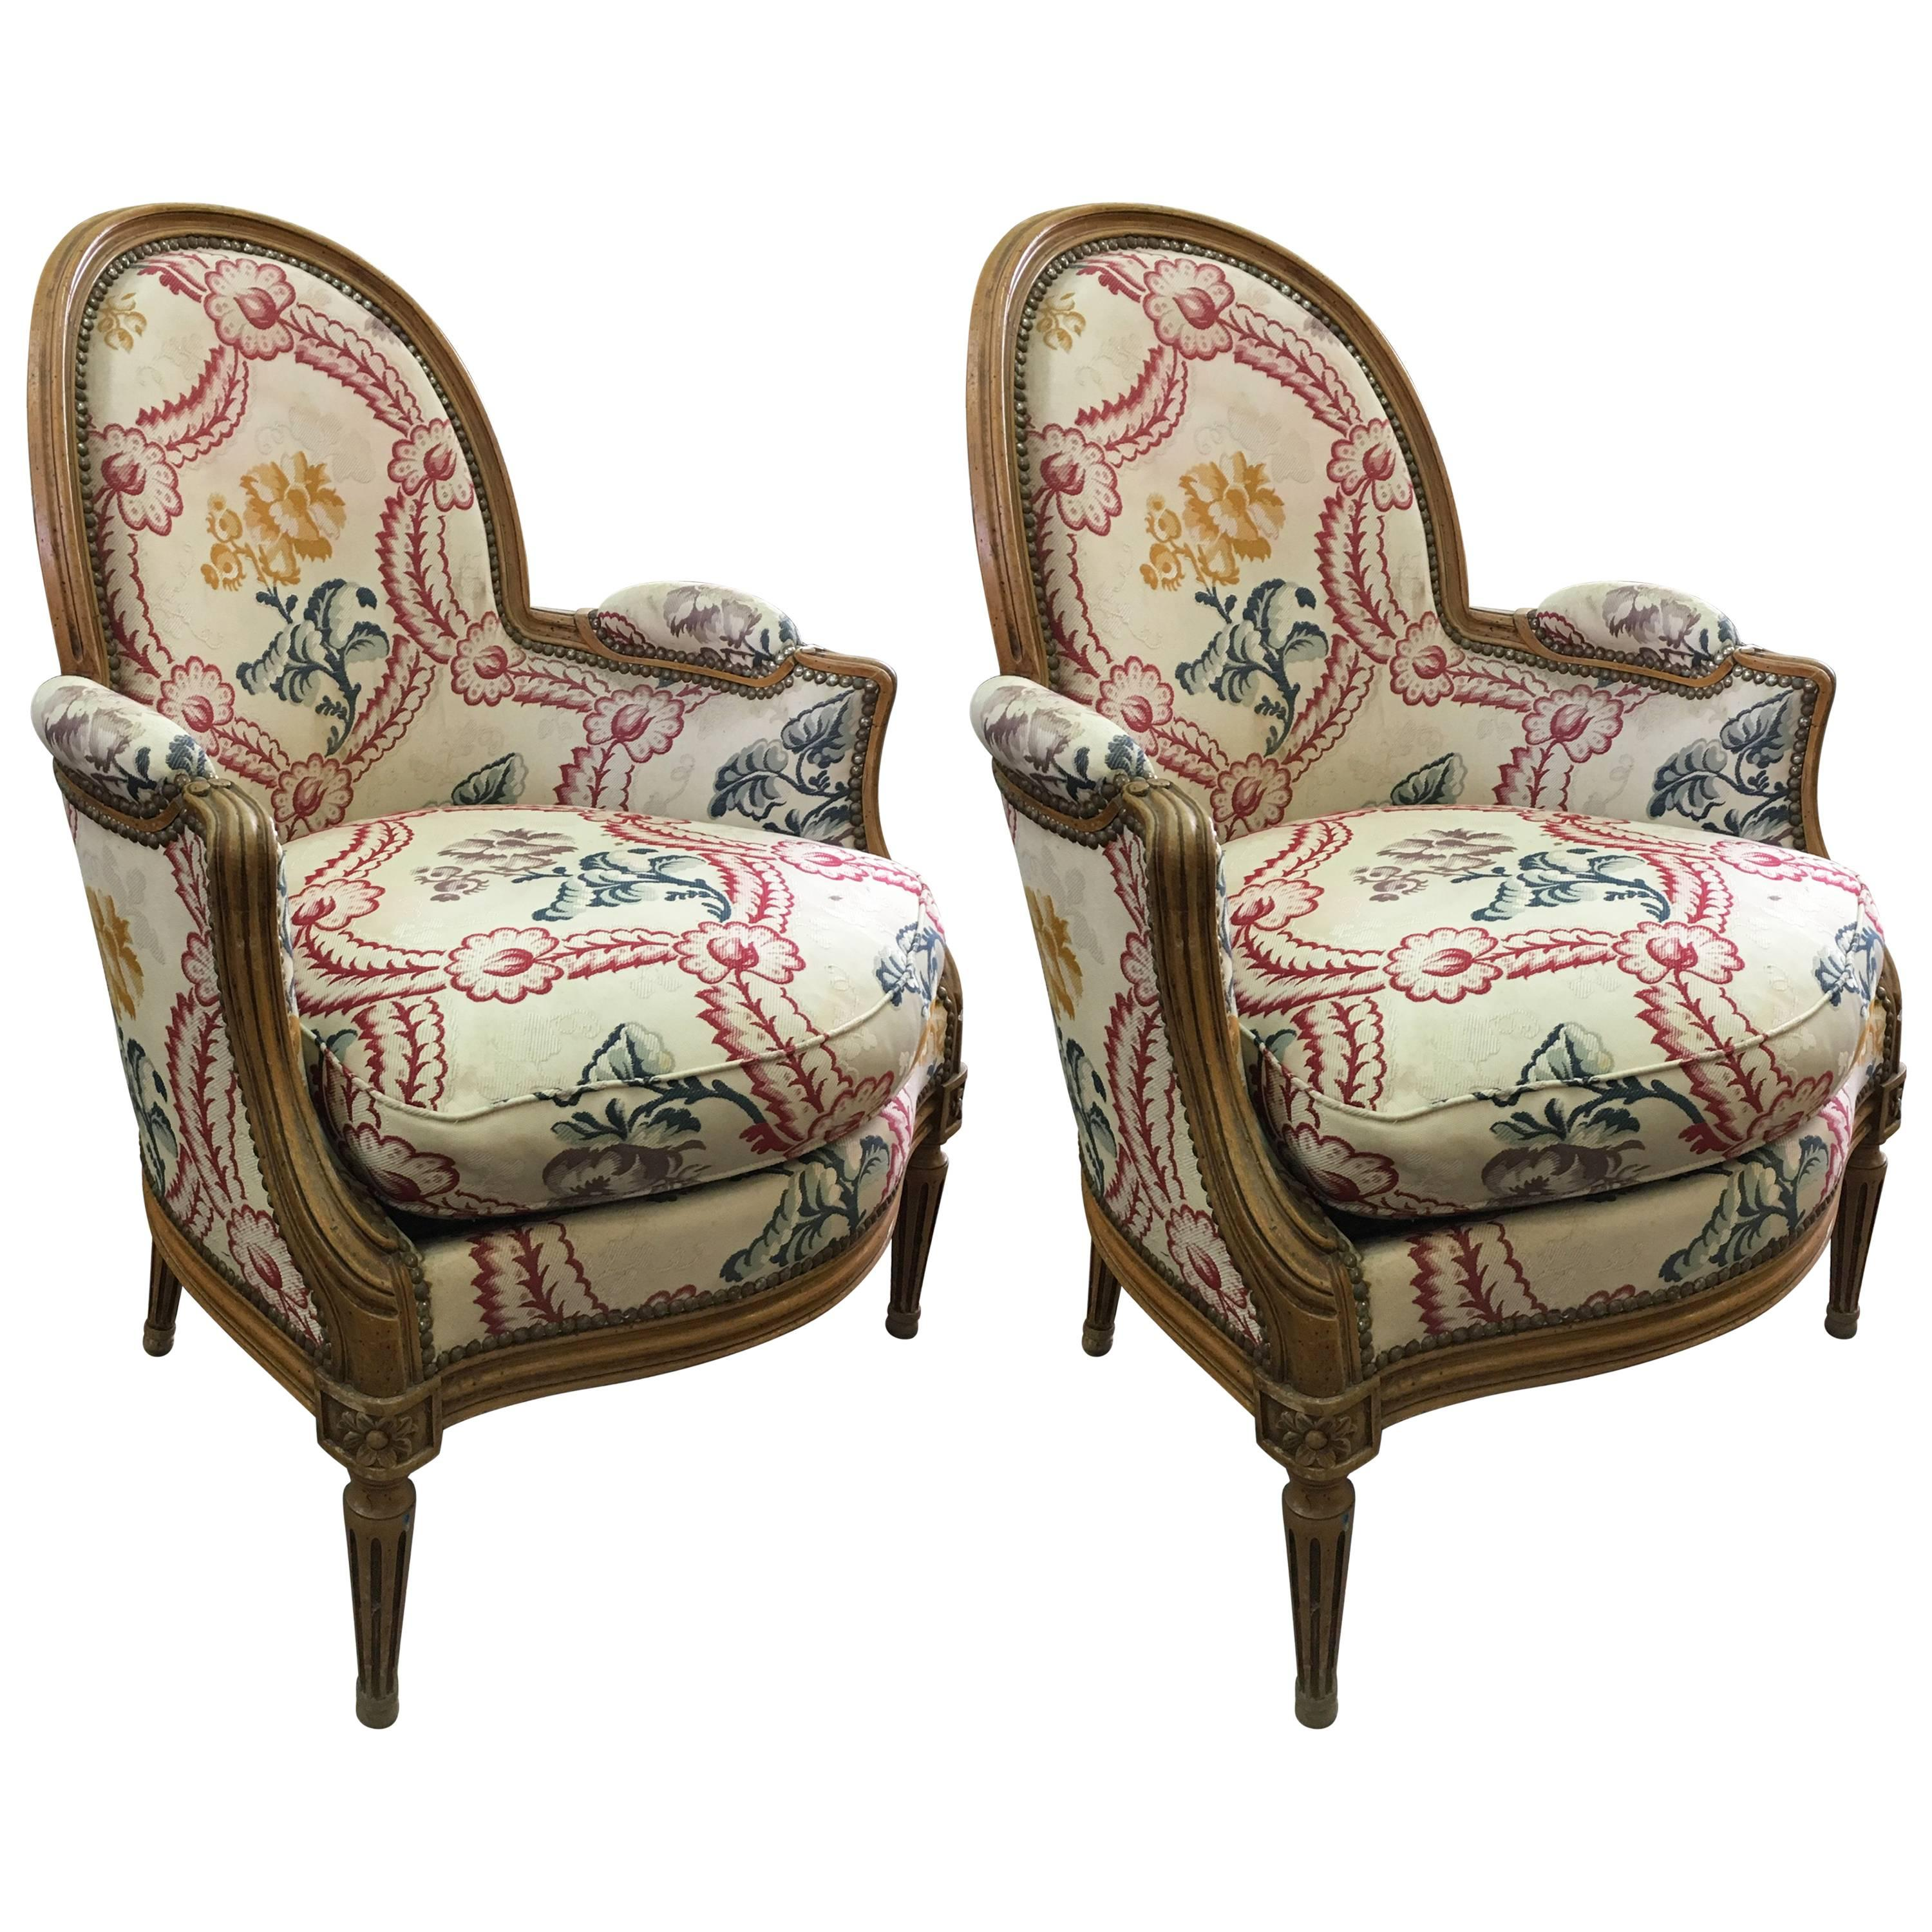 Elegant 19th Century French Pair Of Antique Armchairs In Louis XVI Style For Sale